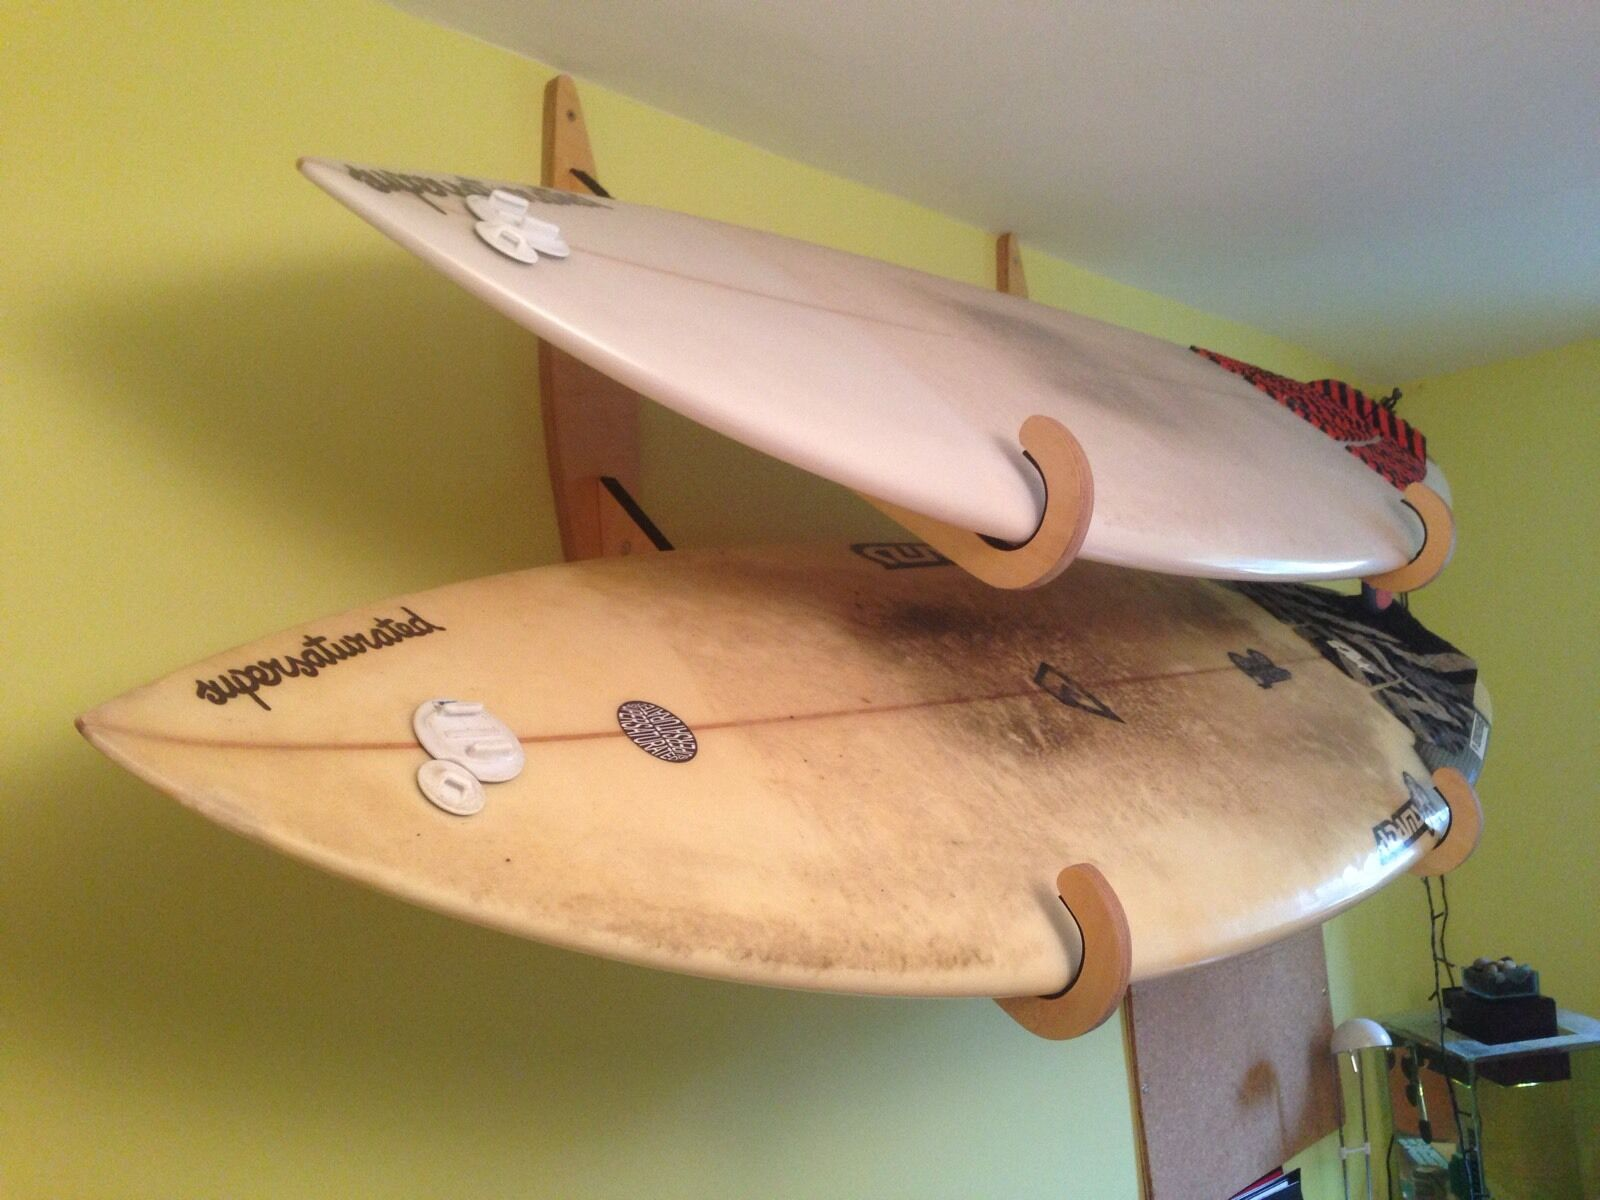 to rack racks store best paddleboard blog sup surfboard way wall a storeyourboard